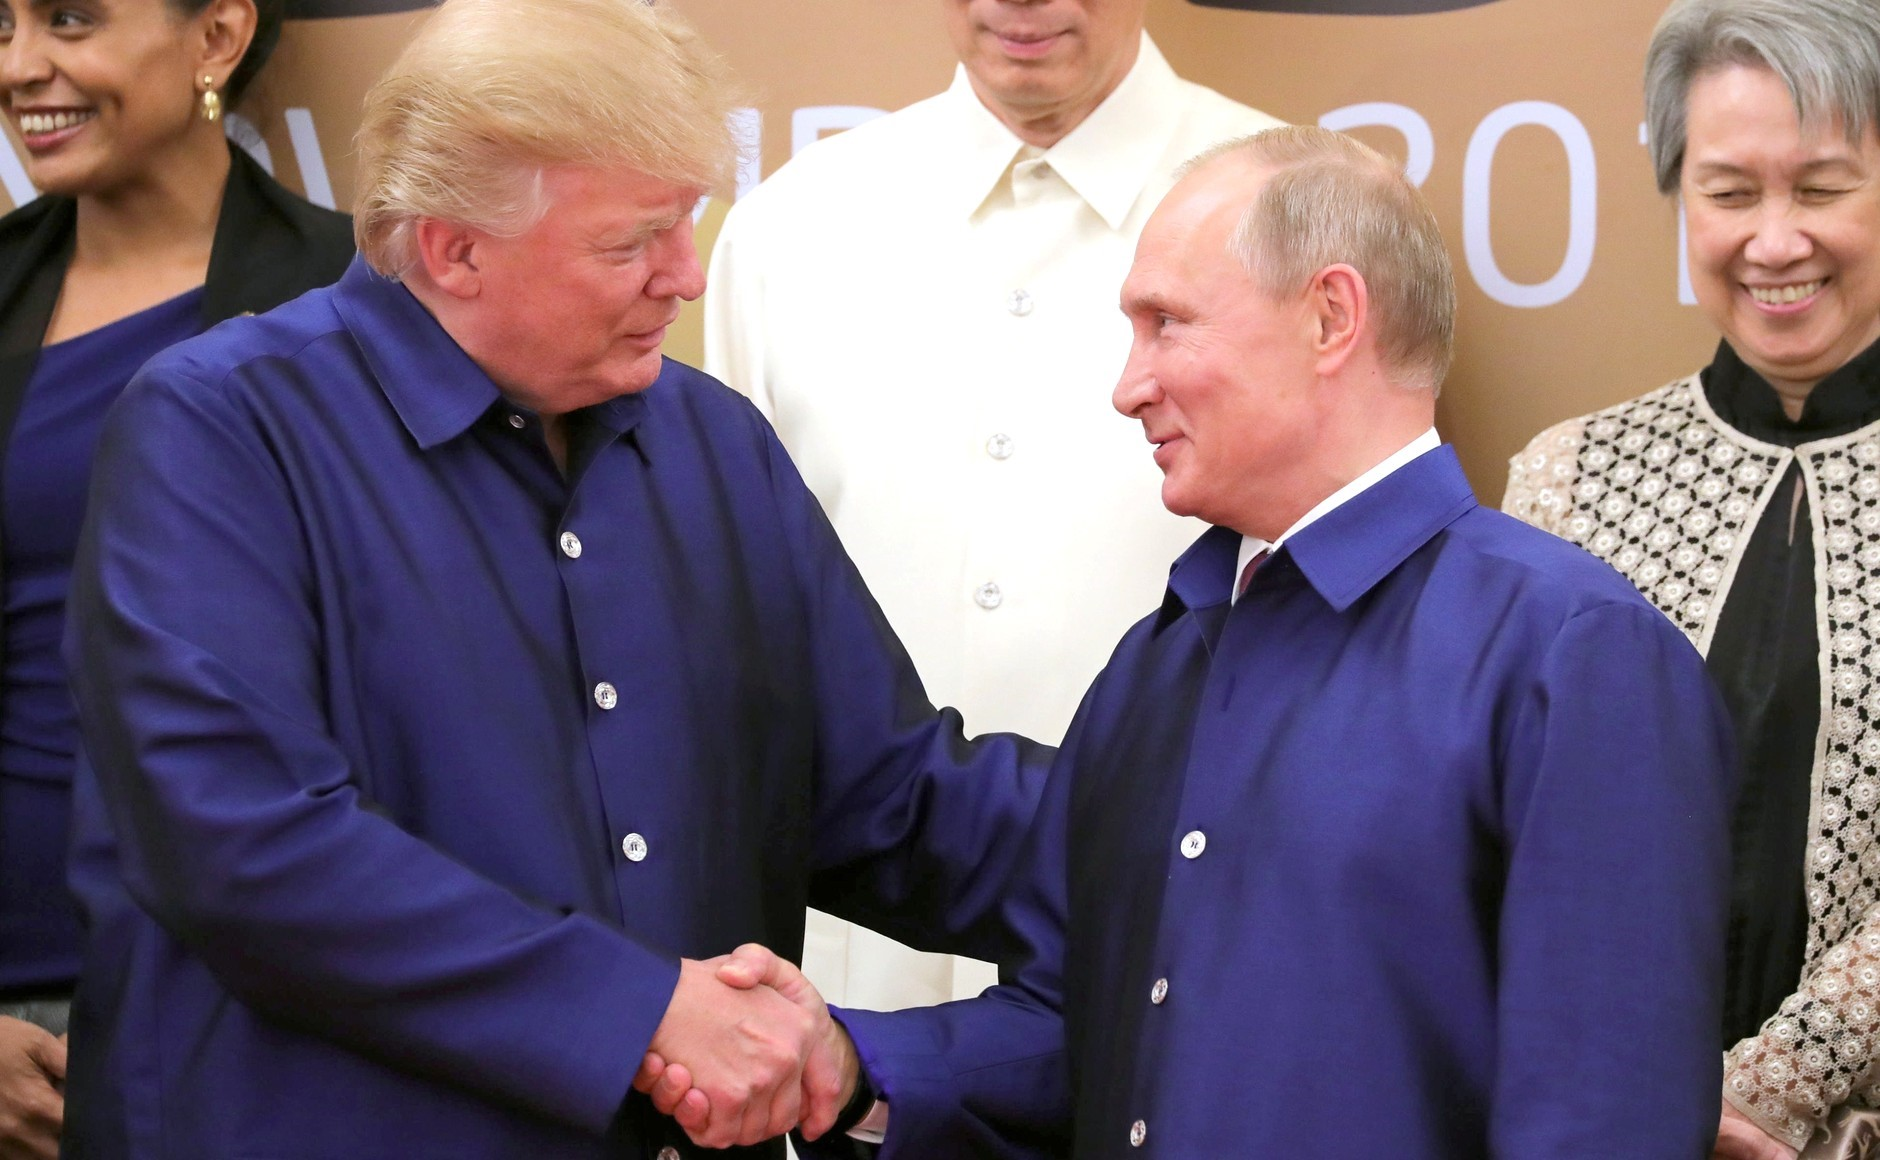 NOV 10 2017 - US President Donald Trump and Russia's President Vladimir Putin shake hands during a family photo ceremony at the 2017 Asia-Pacific Economic Cooperation (APEC) summit in Da Nang, Vietnam on November 10, 2017.